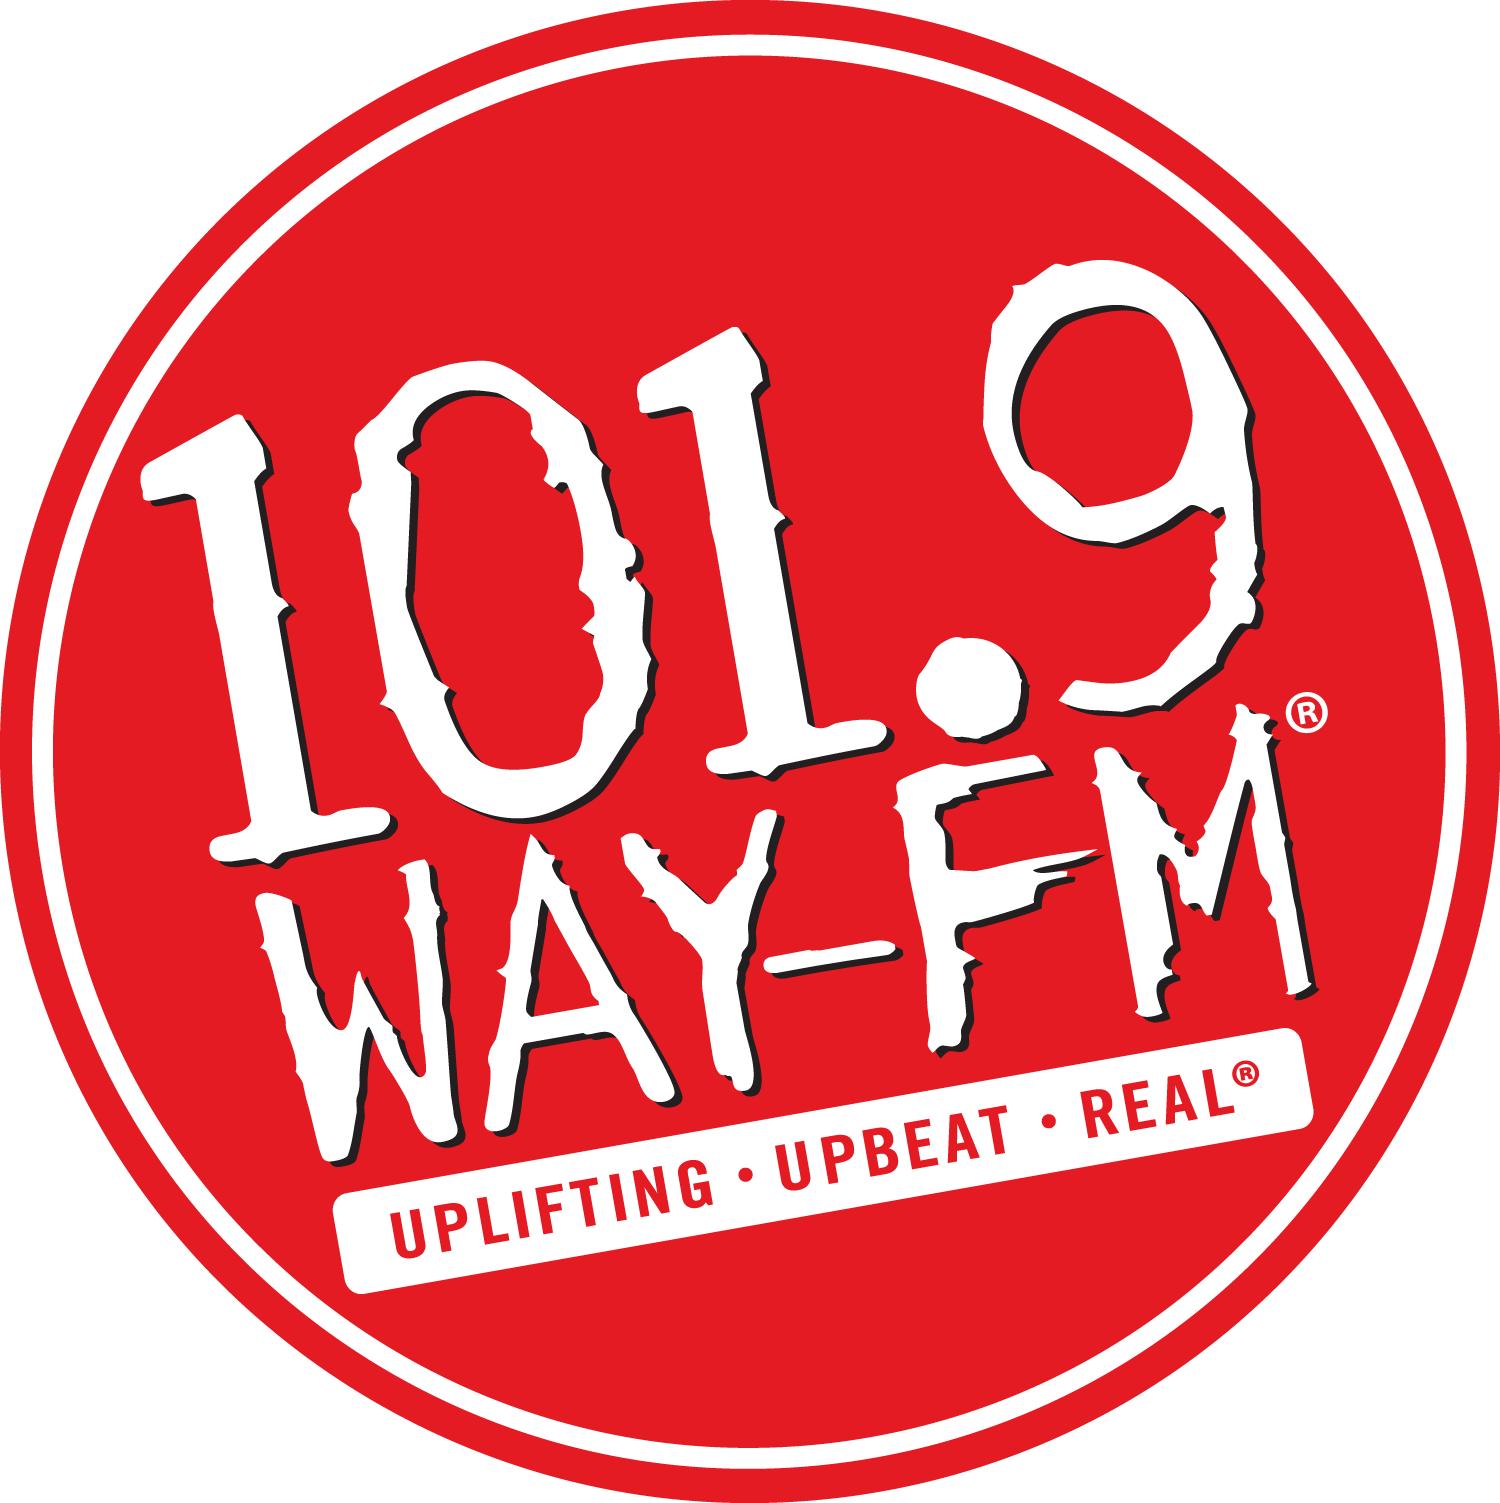 9.17WAY 1019 Denver Slogan Box Logo.png